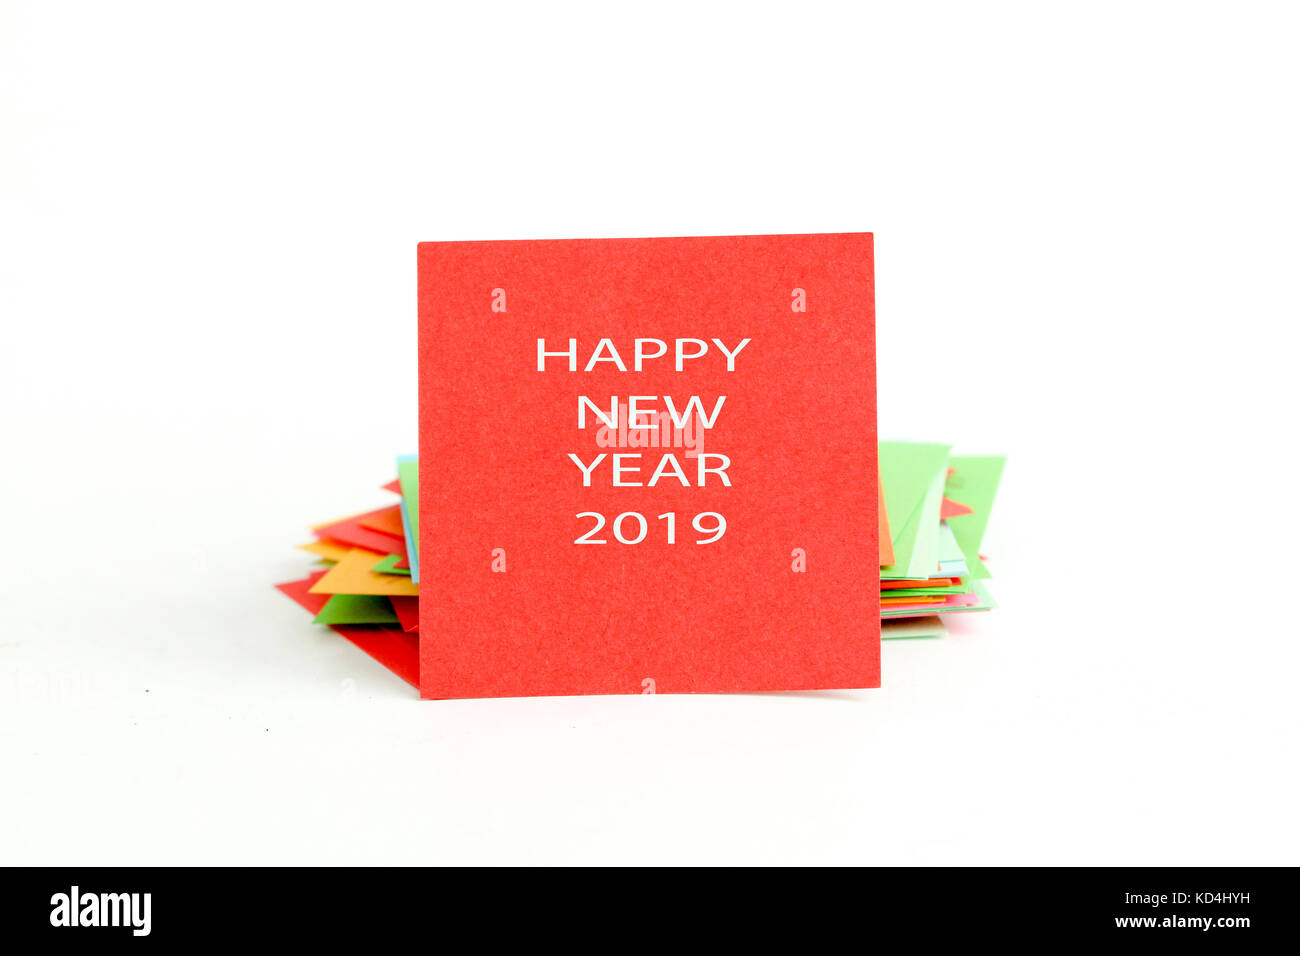 Year 2019 Stock Photos Amp Year 2019 Stock Images Alamy